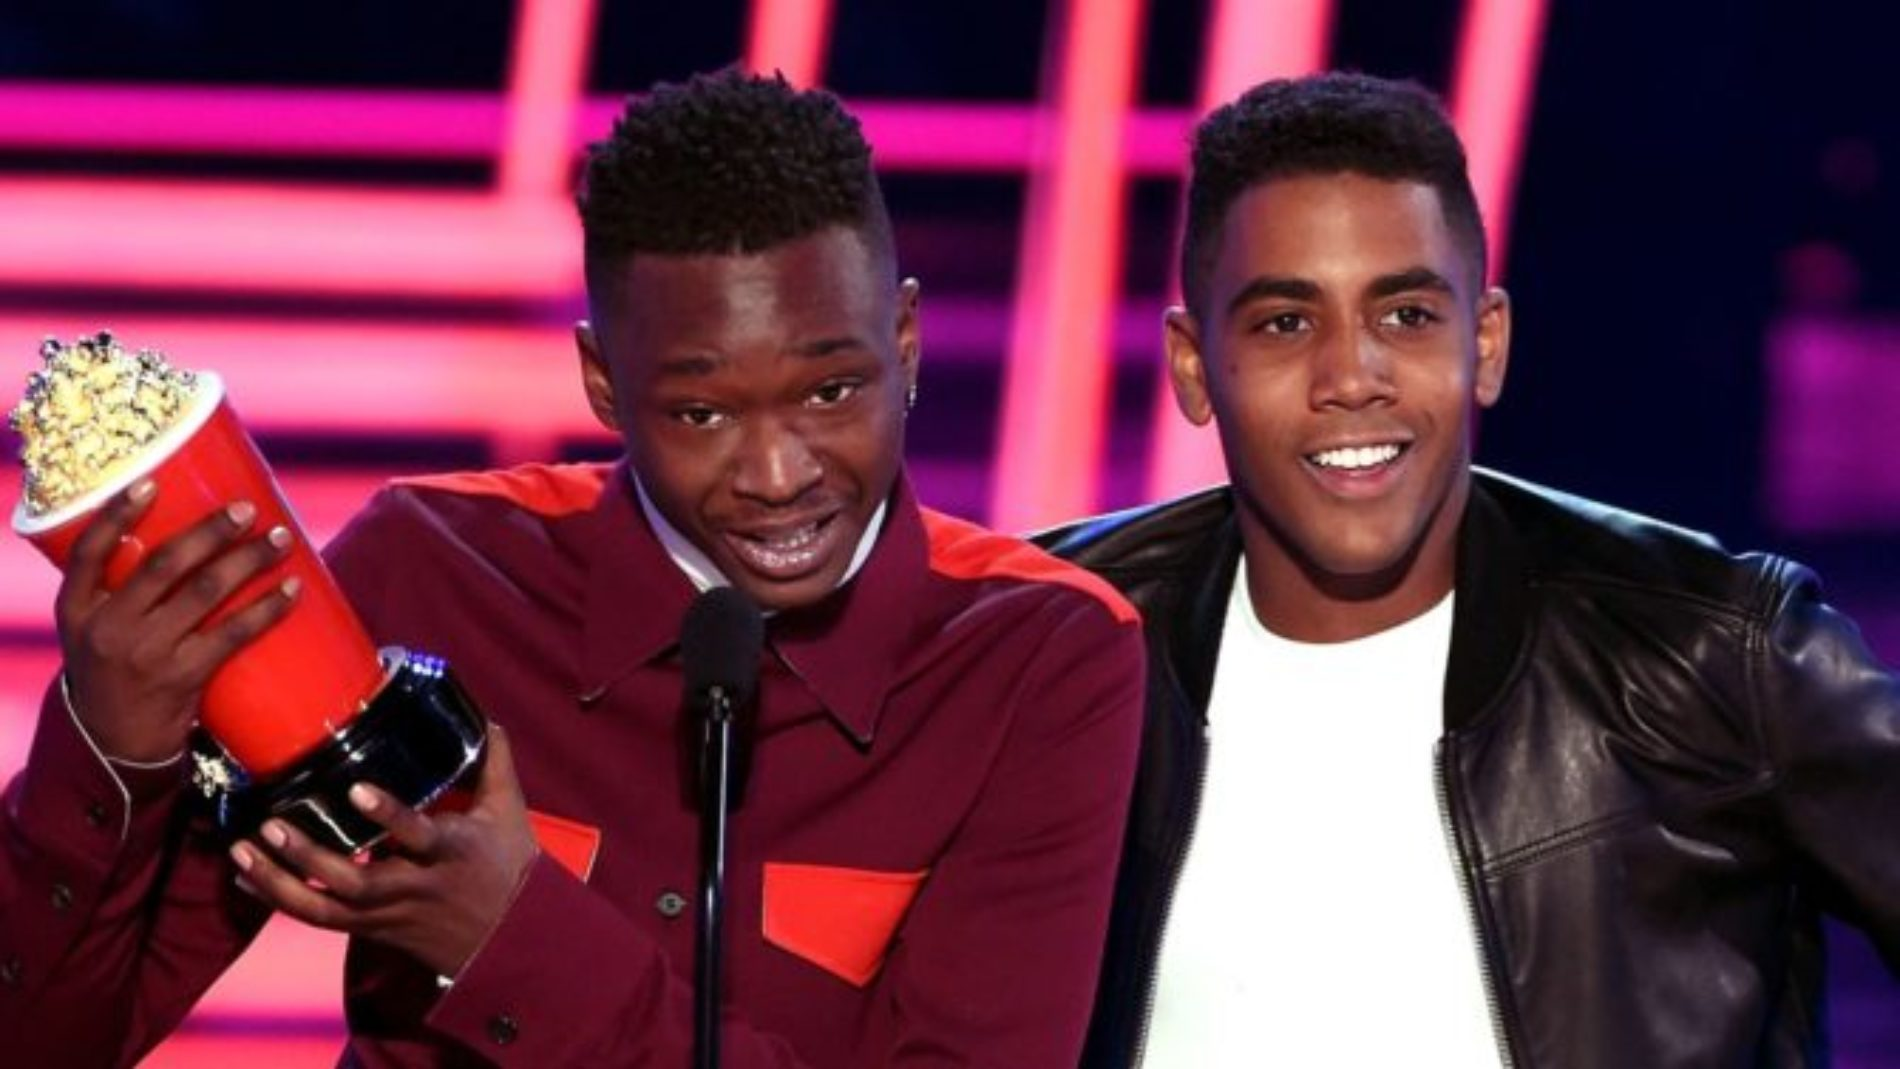 Moonlight stars Ashton Sanders and Jharrel Jerome win Best Kiss at MTV Movie Awards